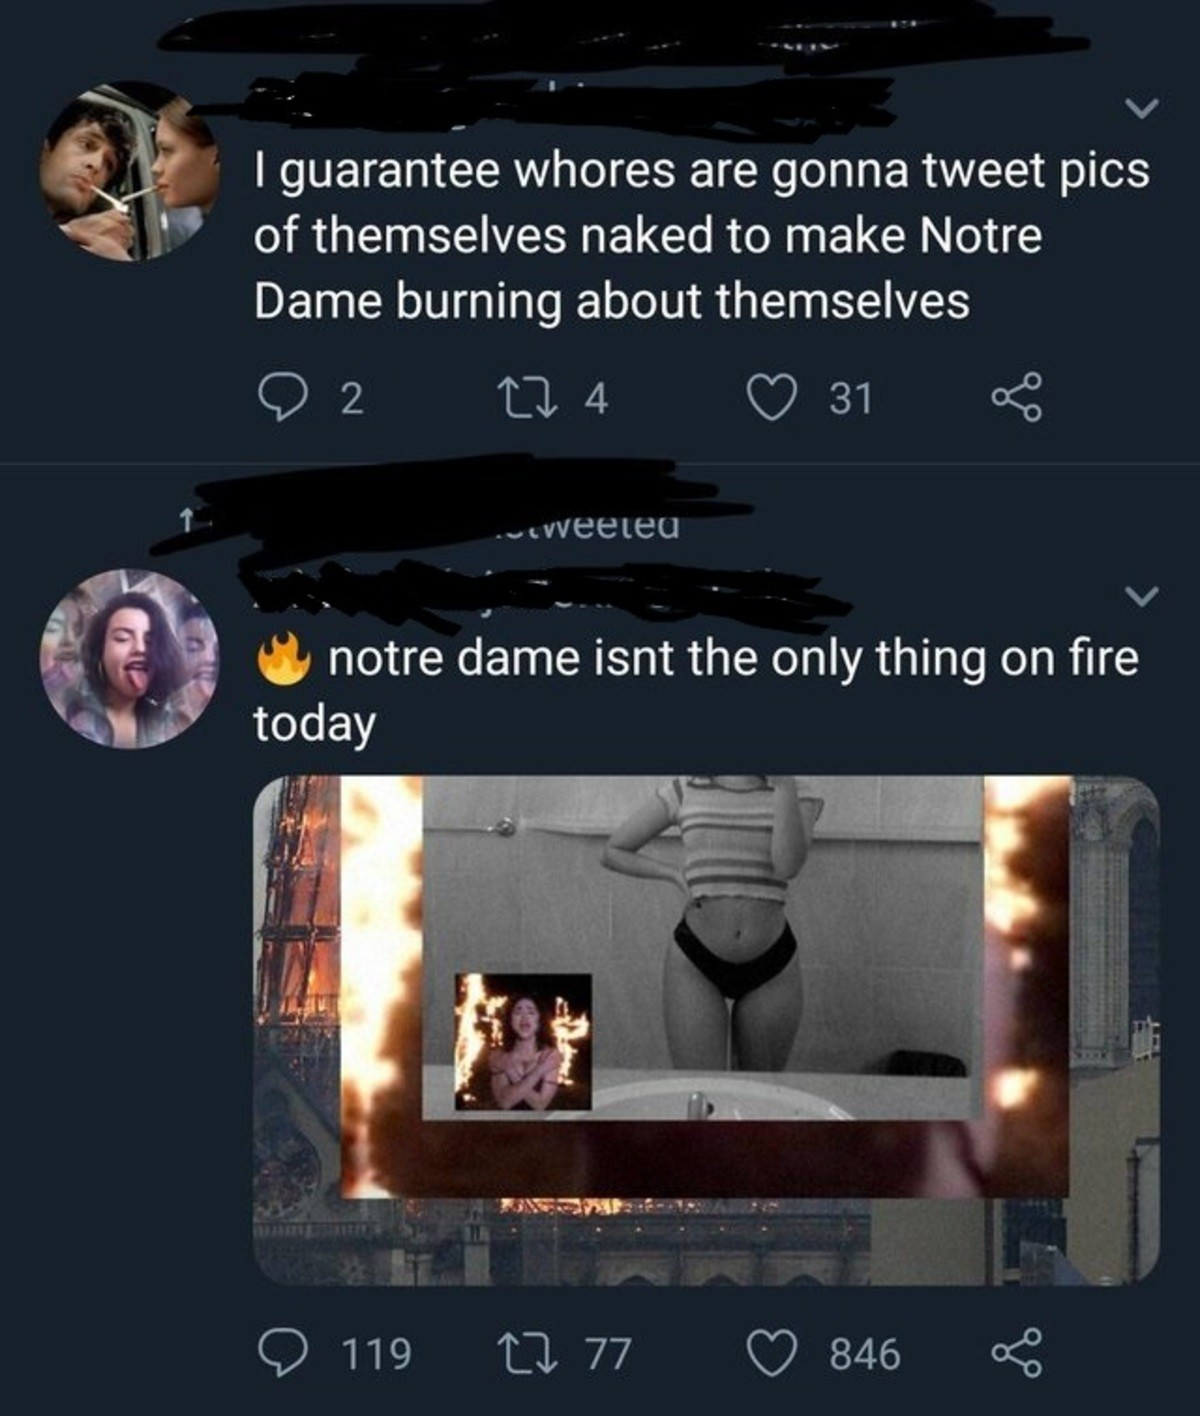 """Classy. .. Tbf at least she wasn't subtle about it or pretending like she cared, I'd be more annoyed by someone being like """"body shot in support of notre dame"""" o"""